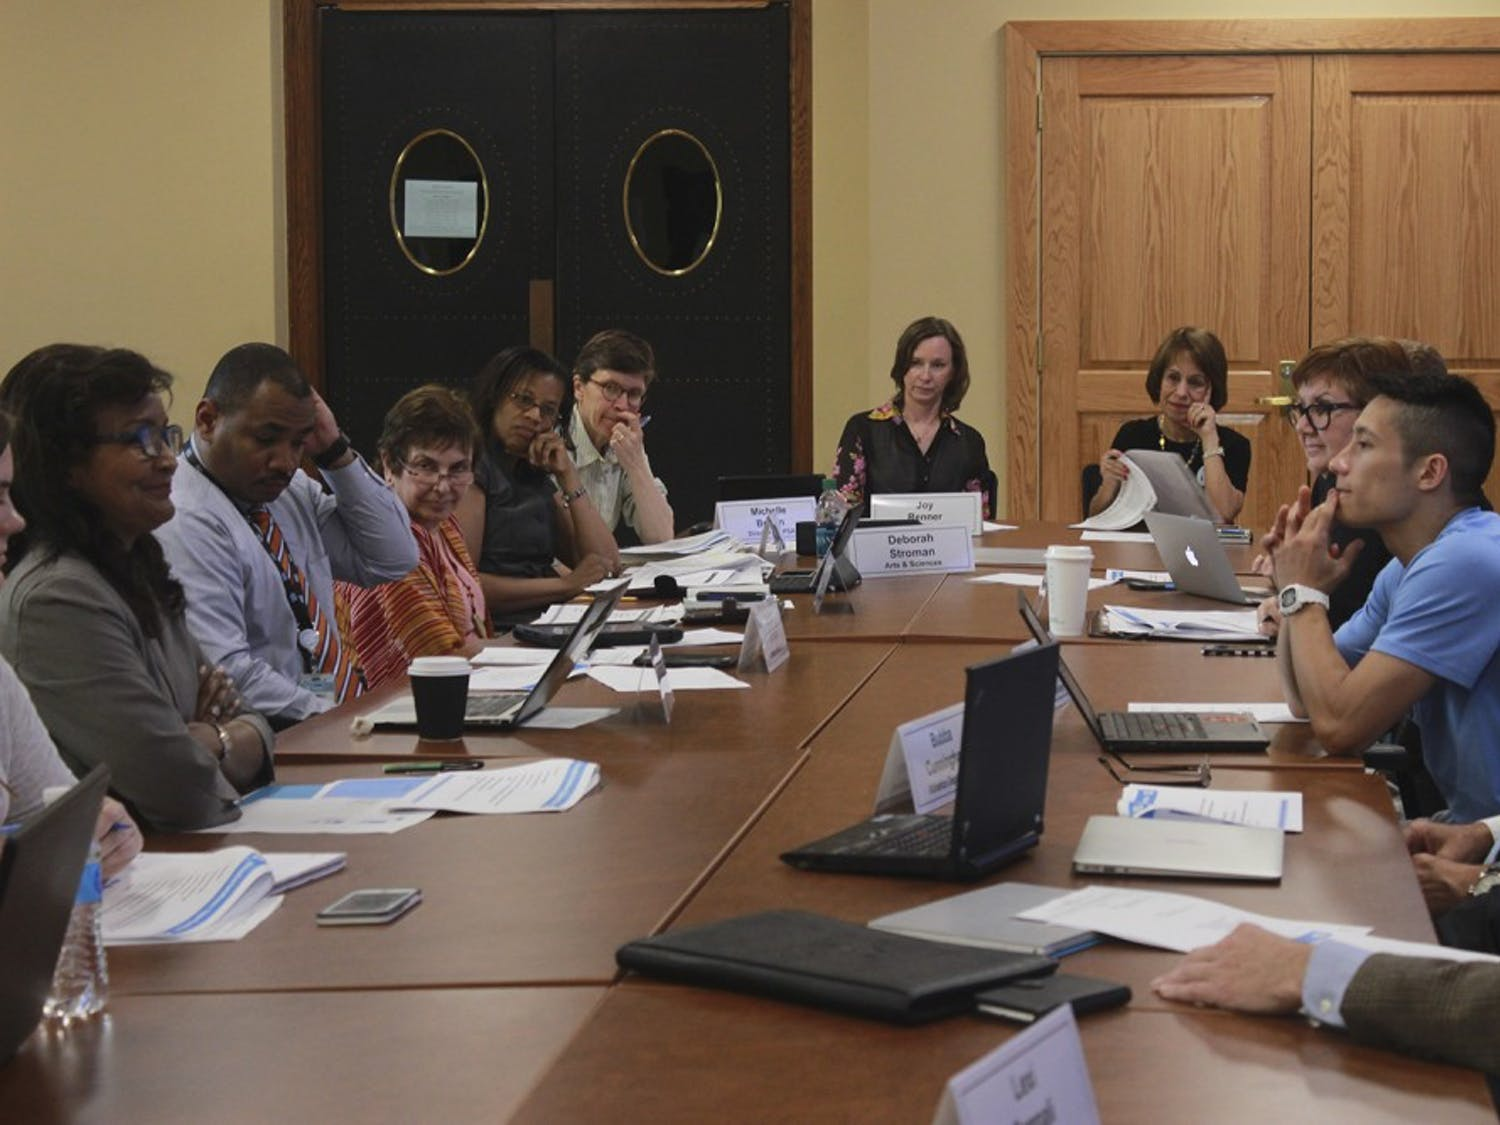 The Faculty Athletics Committee met Tuesday afternoon in a Wilson Library meeting room.